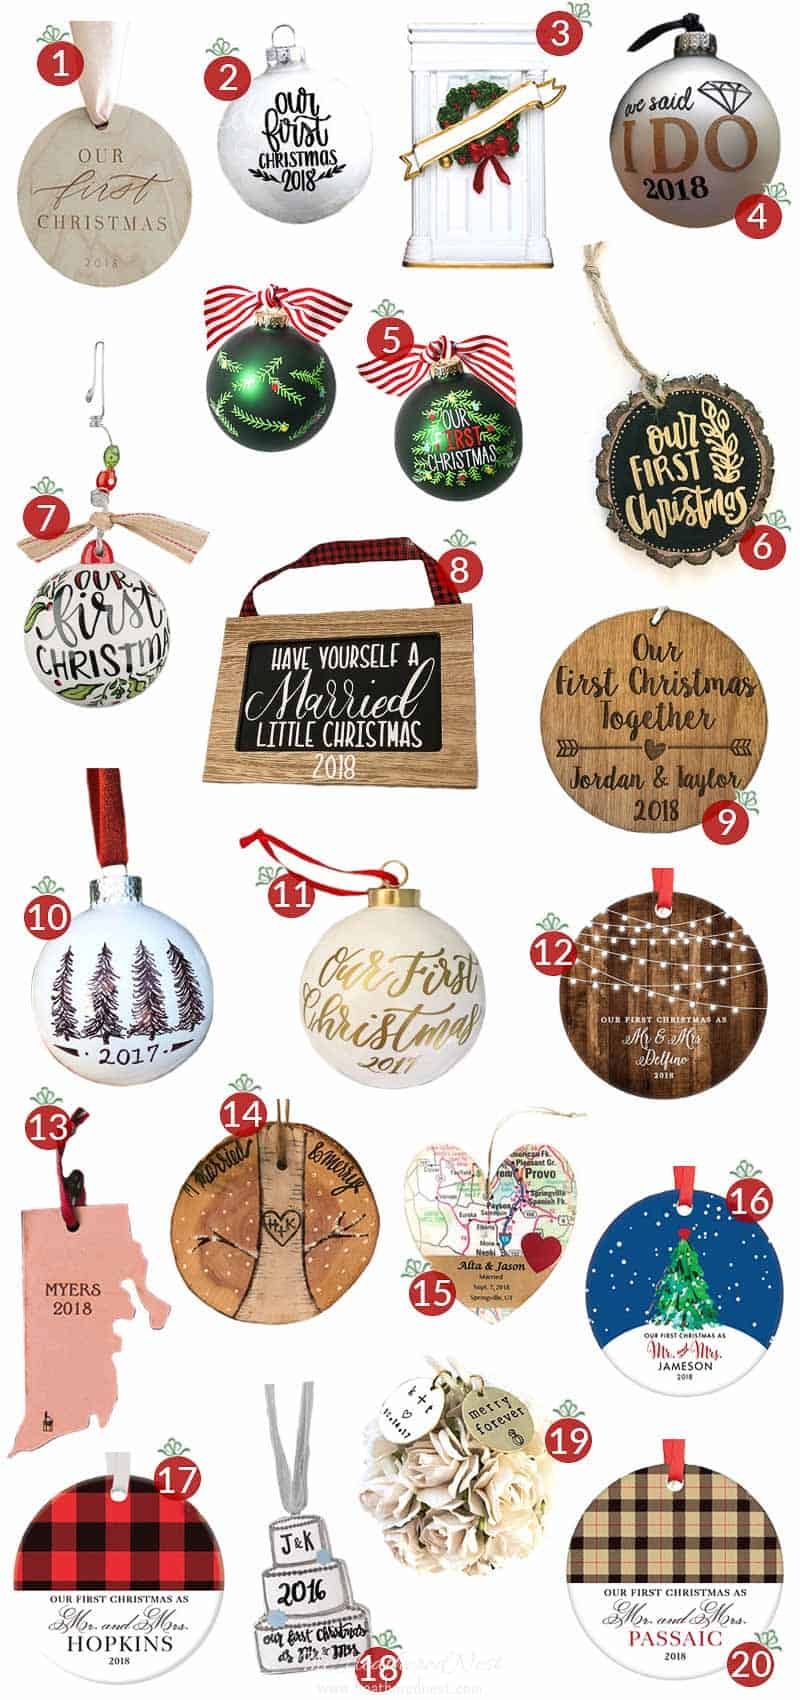 """20 """"our first christmas"""" ornament ideas that are classy & NOT cheesy! #ourfirstchristmasornament #ourfirstchristmasornaments #ourfirstchristmas #our1stchristmas #marriedcoupleornaments #ourfirstchristmasasmrandmrs #ourfirstchristmasornamentnewlyweds"""